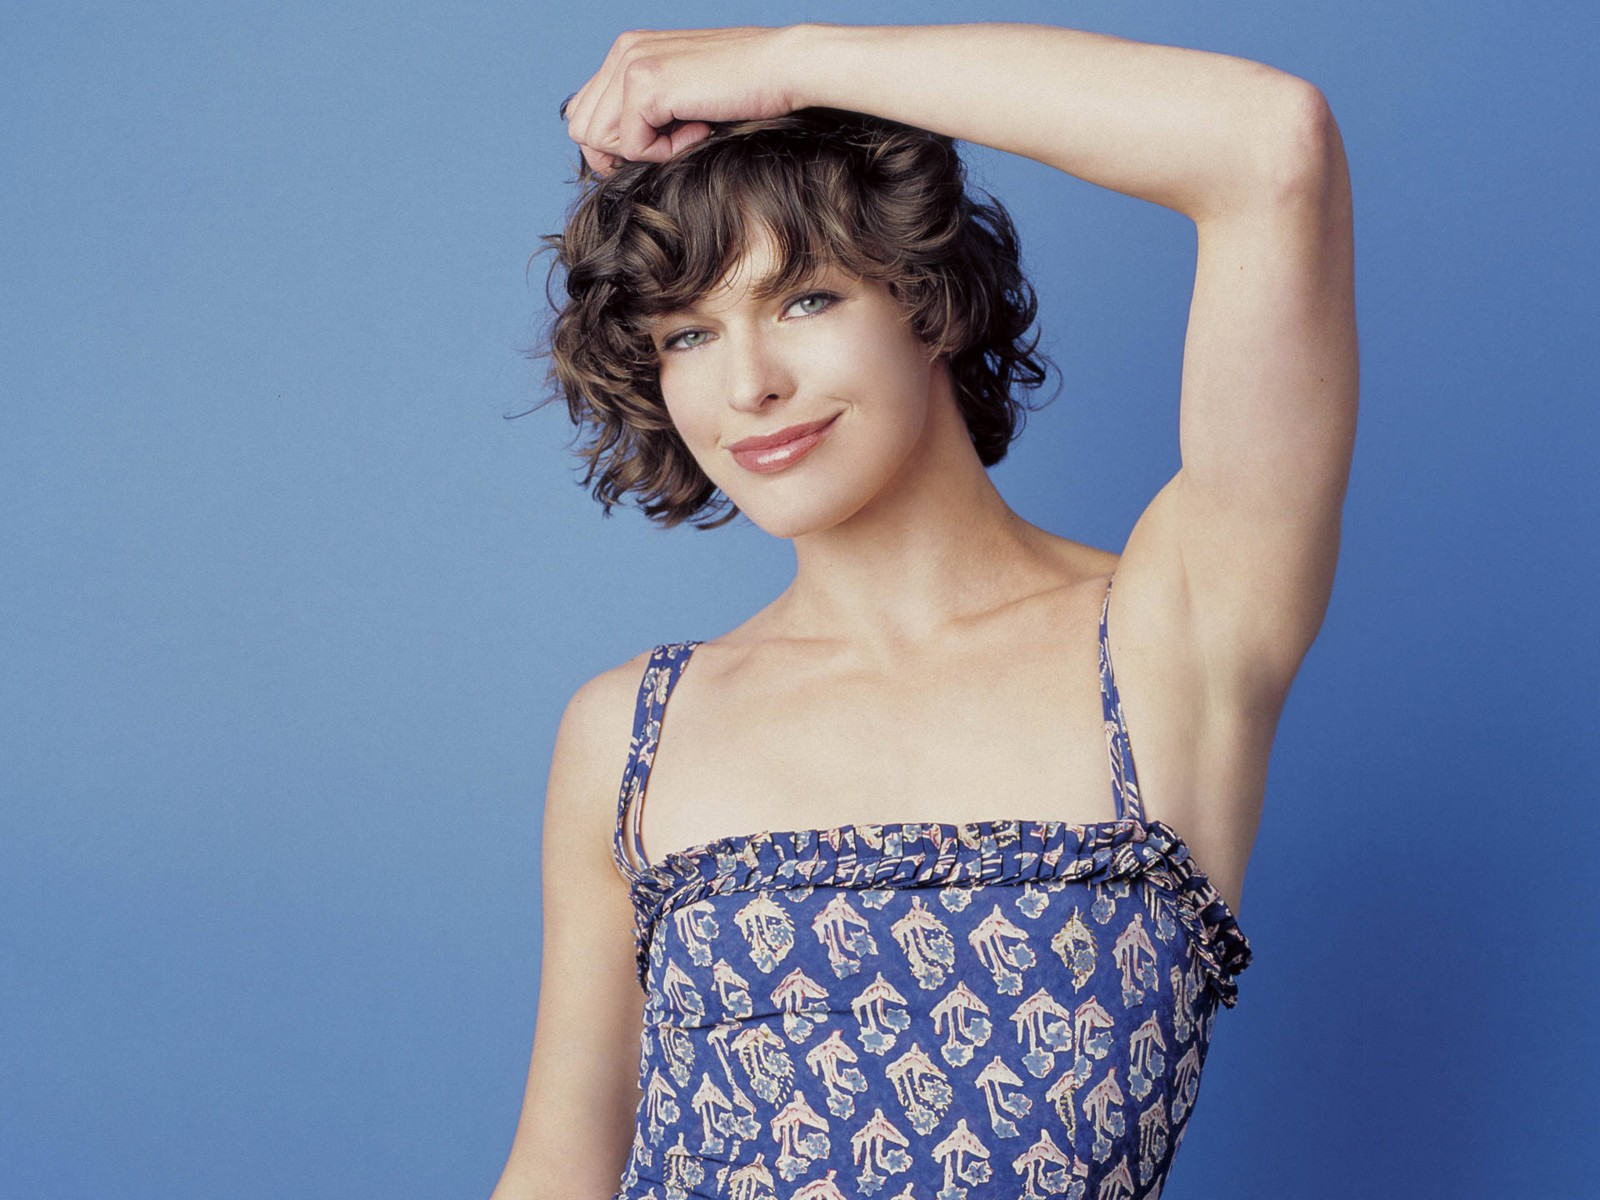 Milla Jovovich 30 Beautiful Photos Of Milla Jovovich 17 Milla Jovovich, Beautiful Photos Of Milla Jovovich